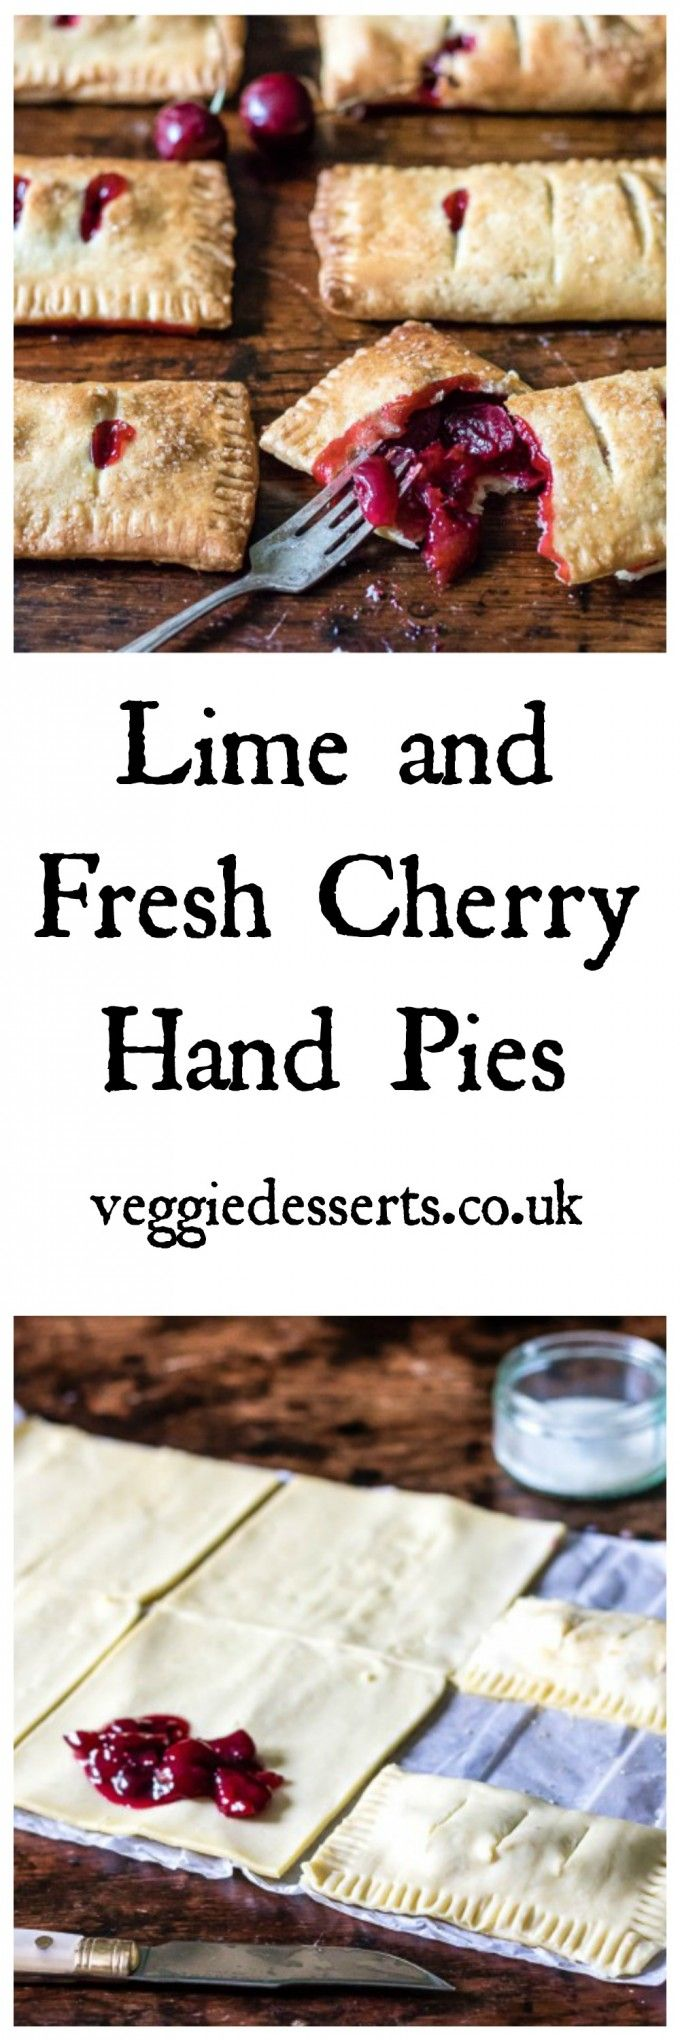 Lime and Fresh Cherry Hand Pies | Veggie Desserts Blog >>> These cherry hand pies are quick and easy to make, particularly with store-bought shortcrust pastry. They're a great way to use up the season's beautiful sweet cherries.